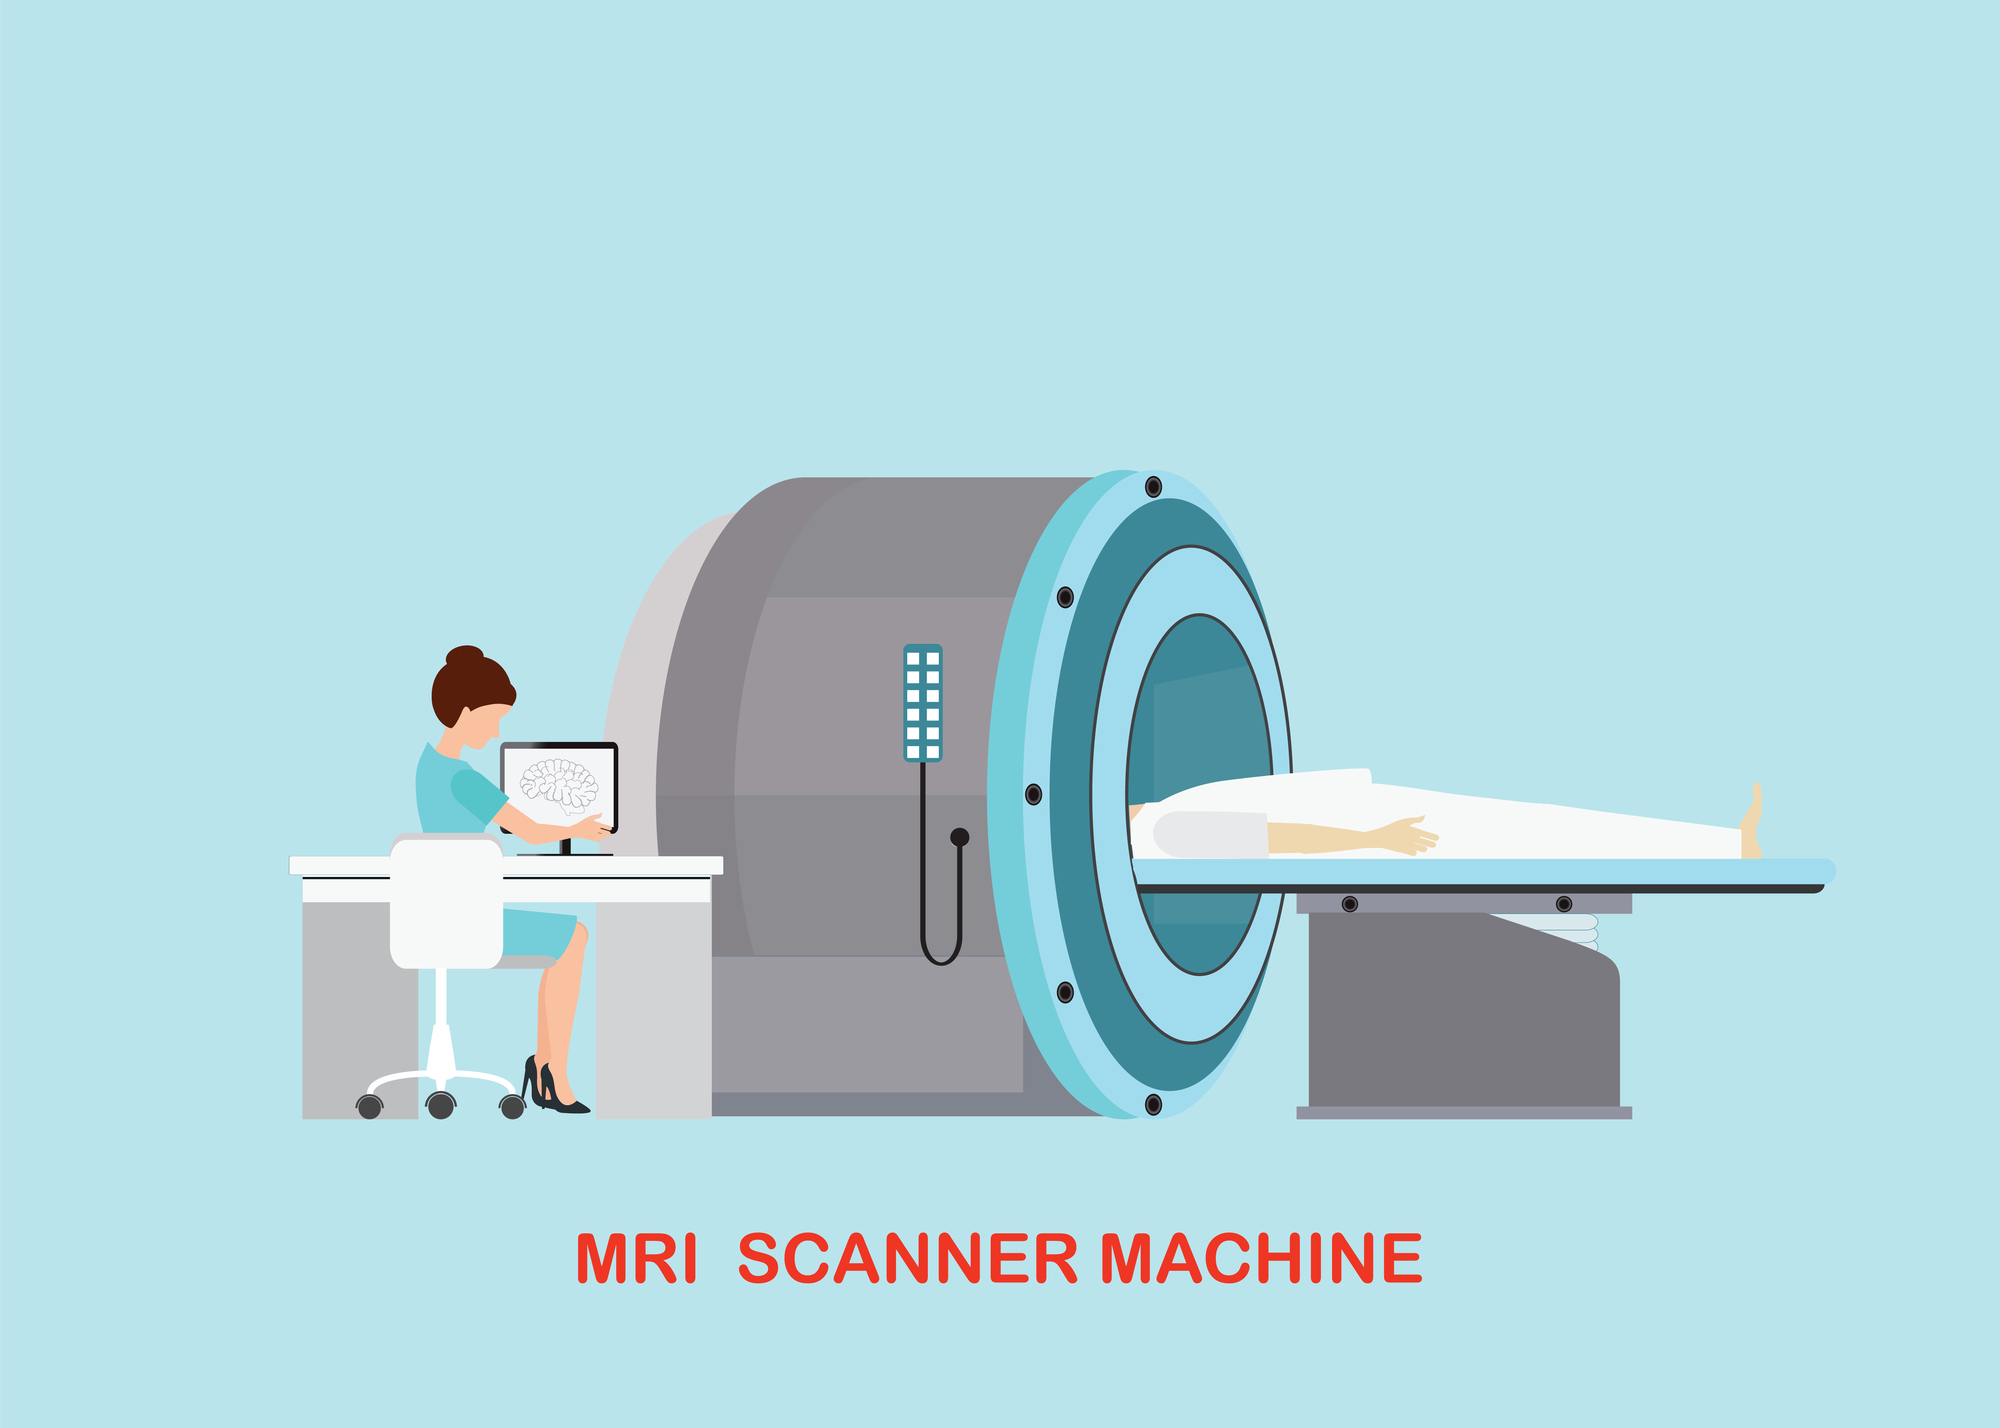 Doctor scanning mri patient with MRI scanner machine technology